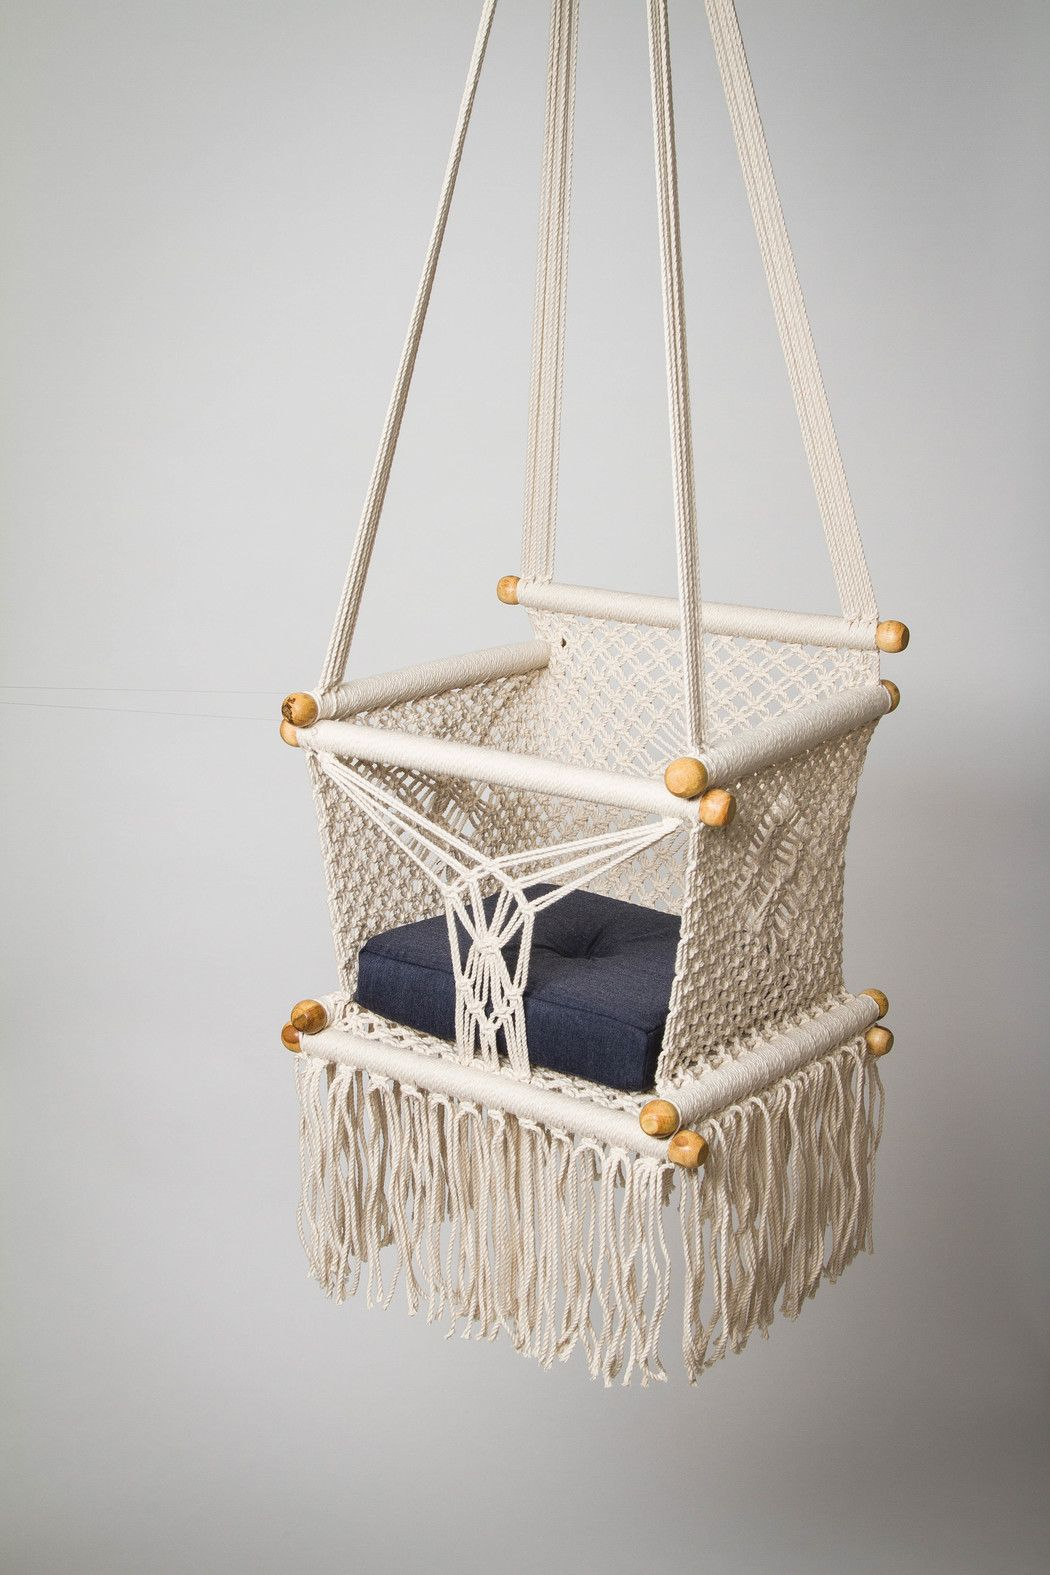 Swinging Chair Swing Your Baby In Style With This Boho Swing Chair